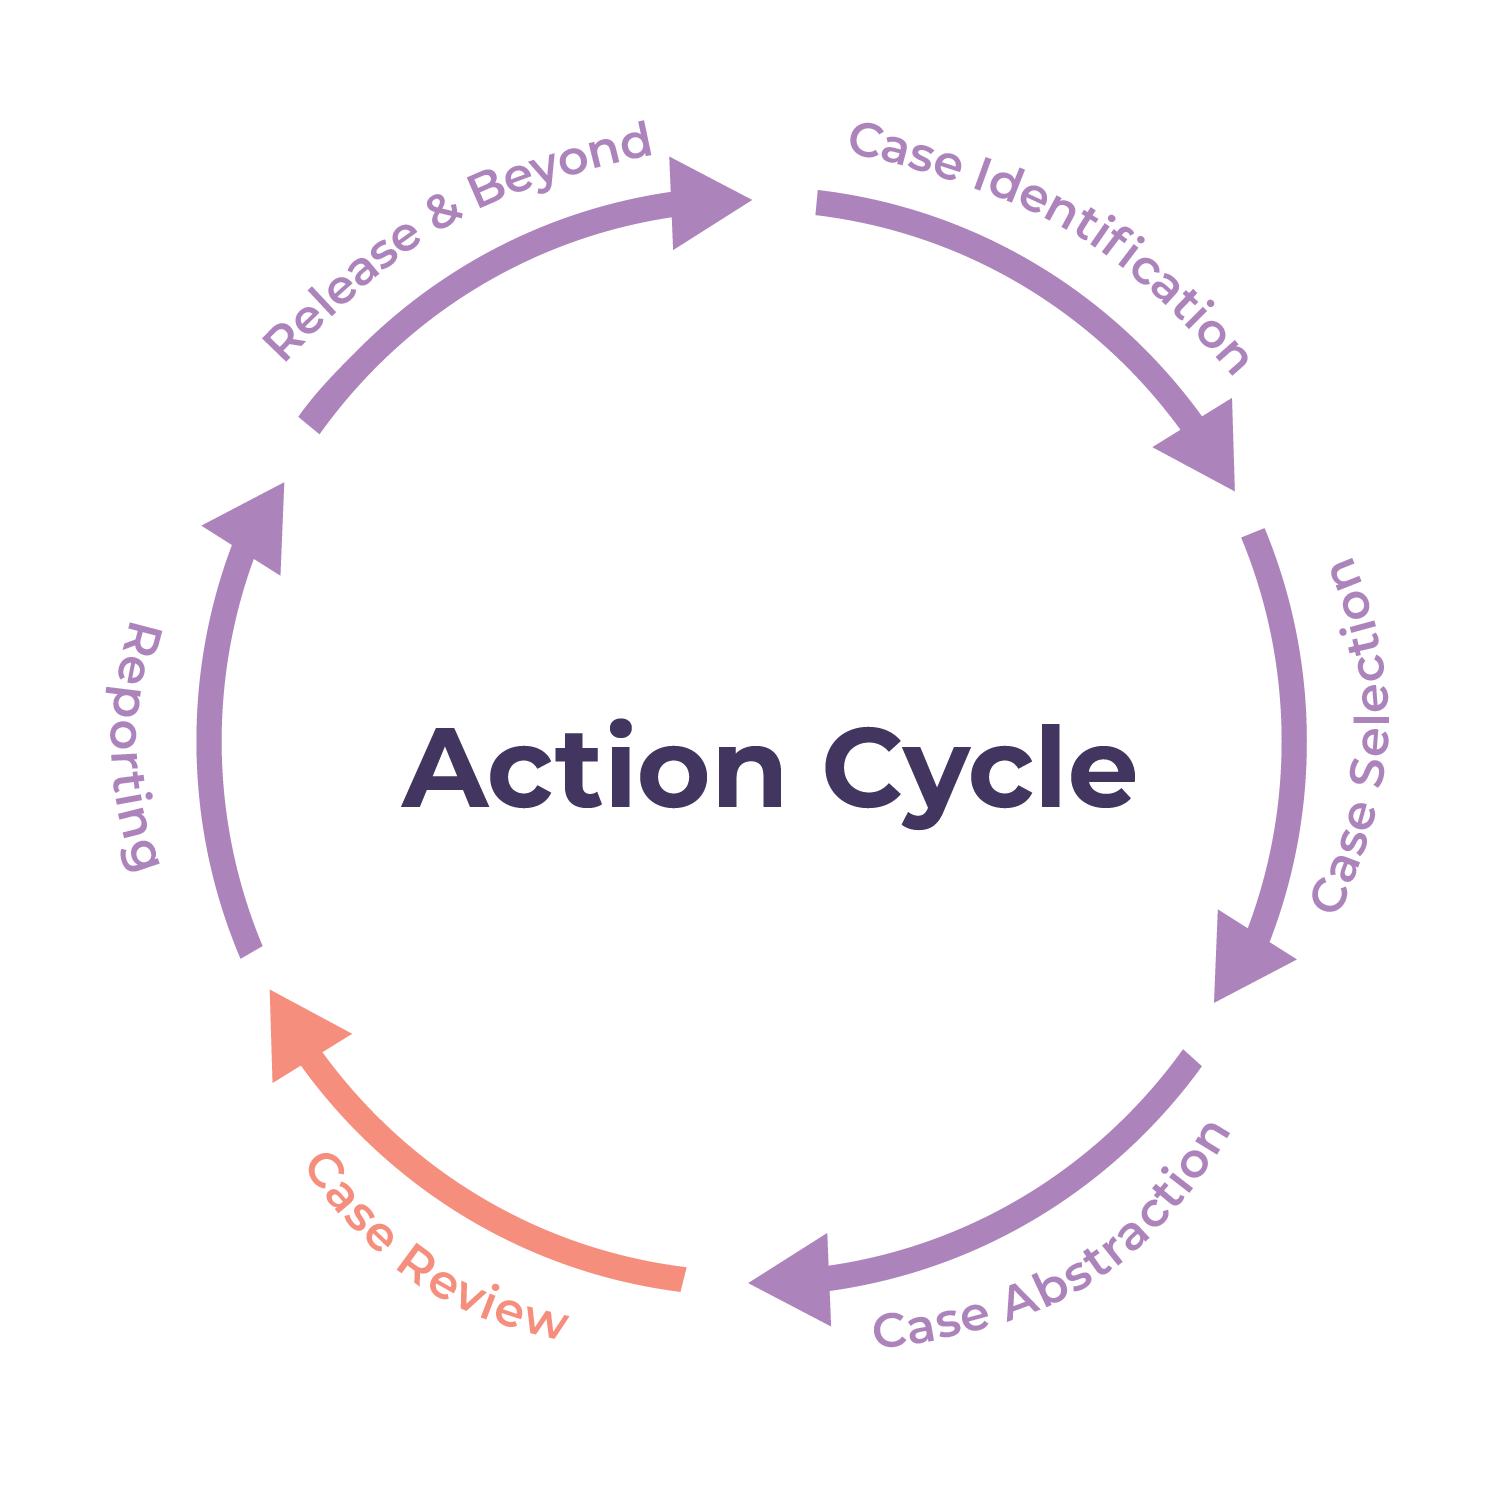 action cycle step 4